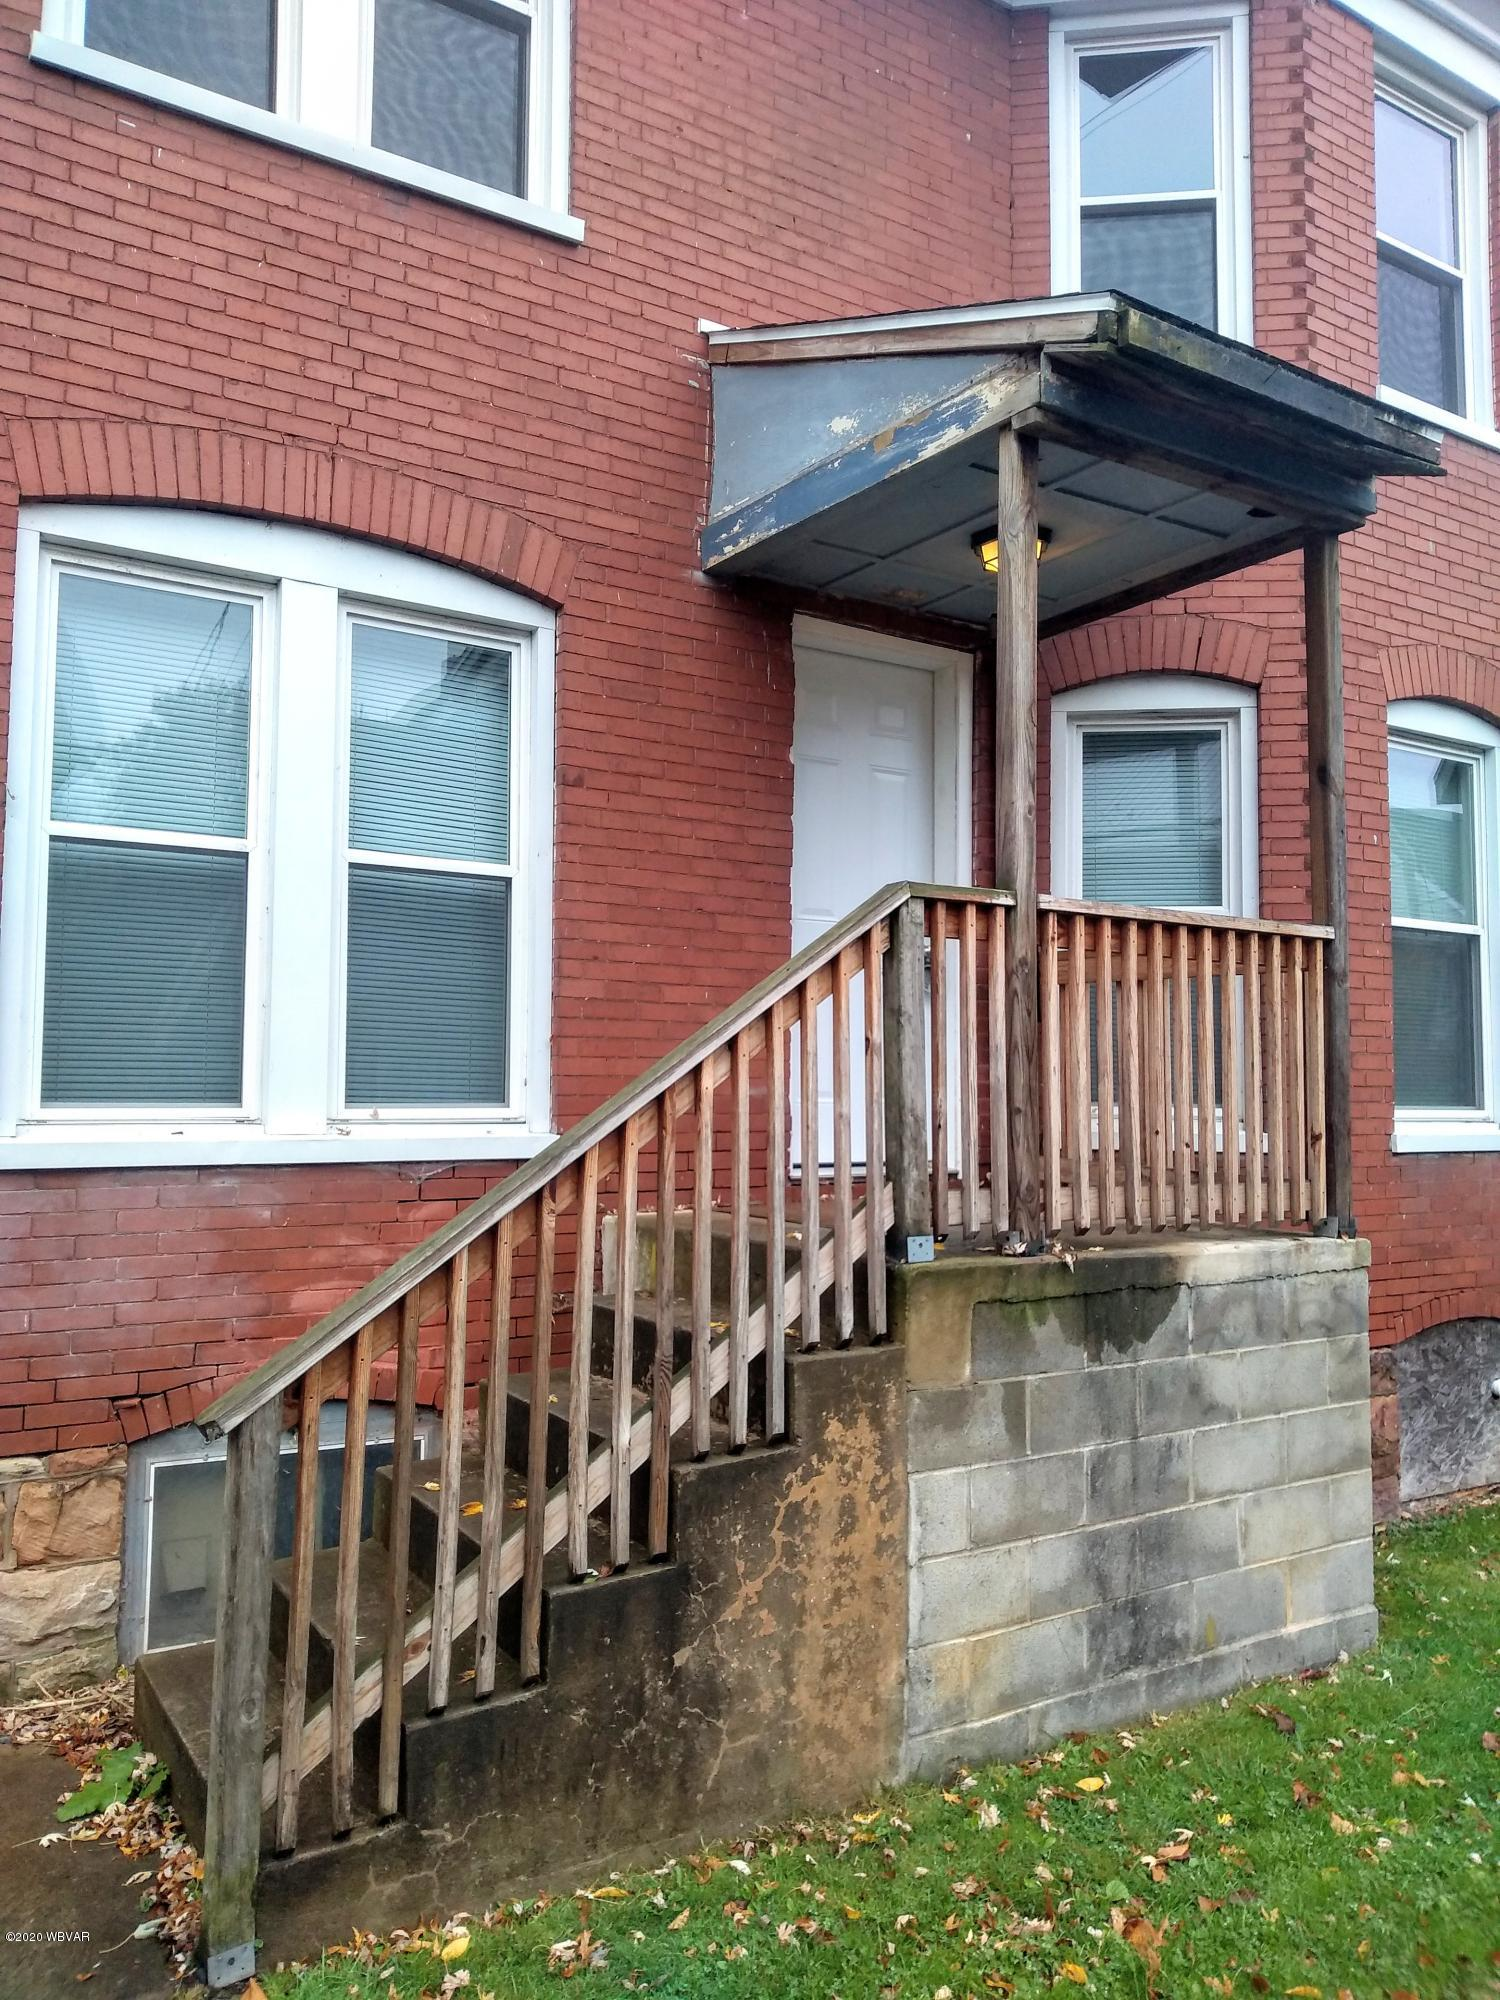 690 FIRST AVENUE, Williamsport, PA 17701, 2 Bedrooms Bedrooms, ,1 BathroomBathrooms,Resid-lease/rental,For sale,FIRST,WB-91419